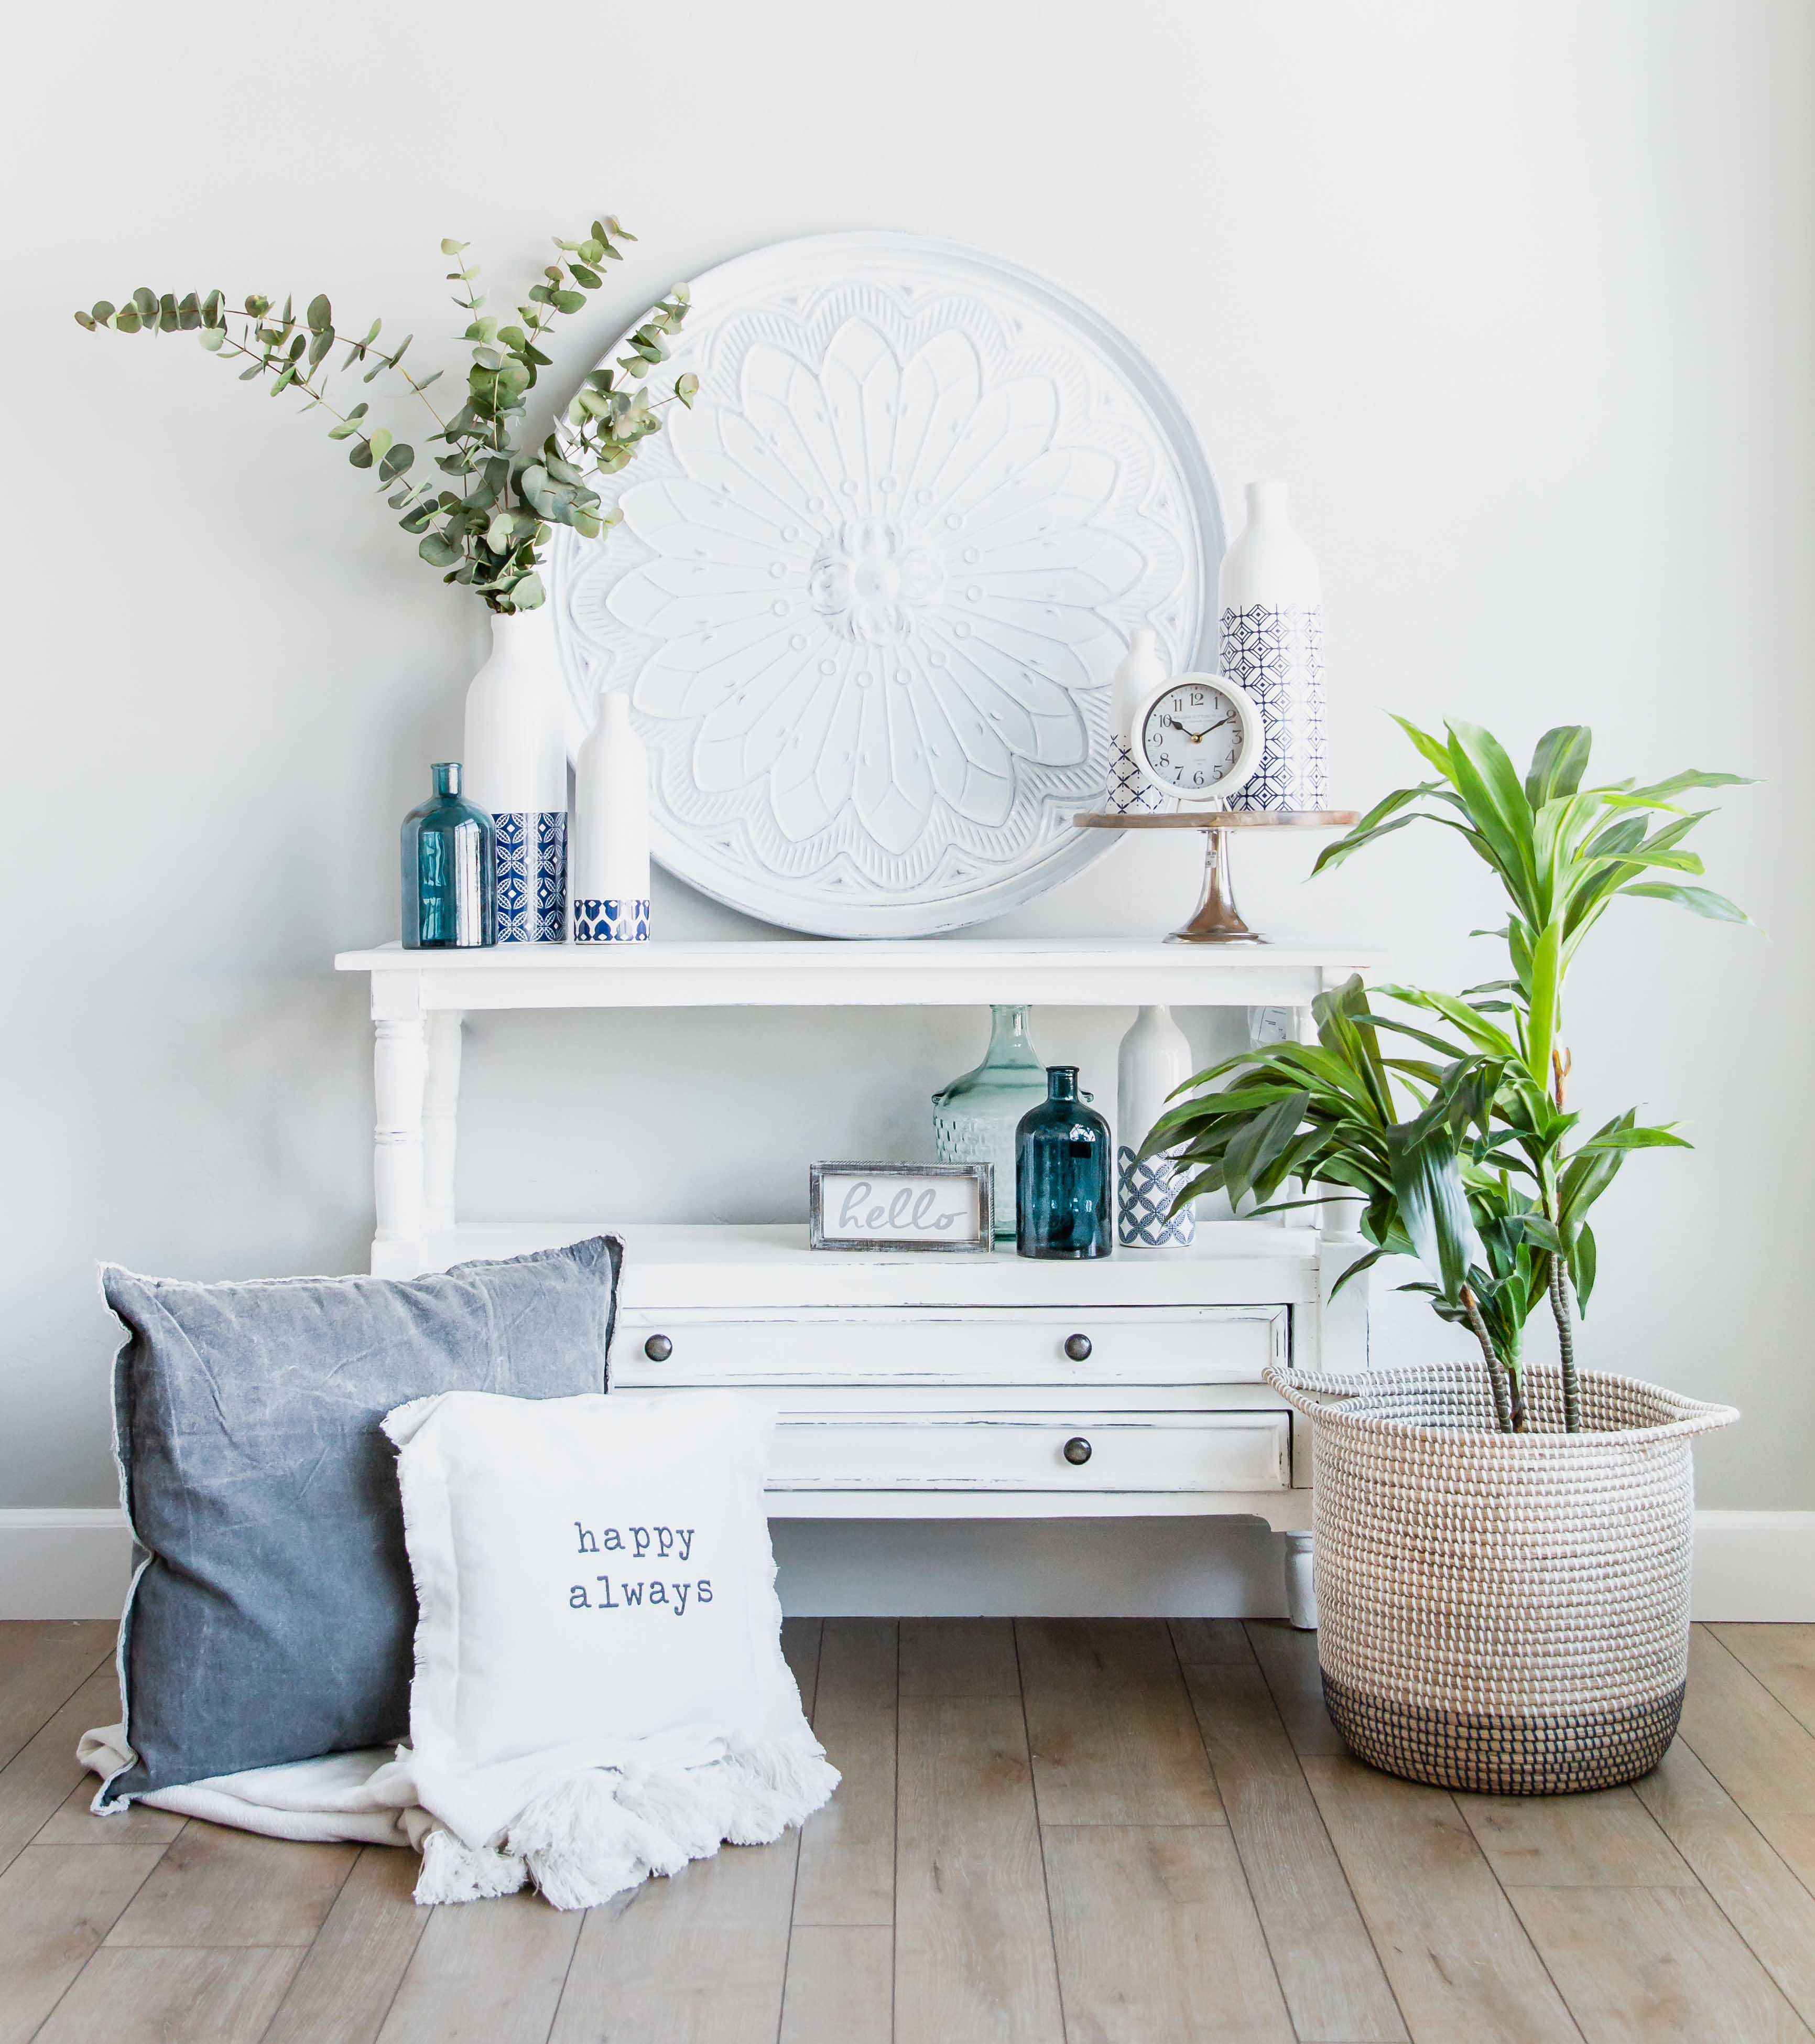 Real Deals - Affordable Home Decor